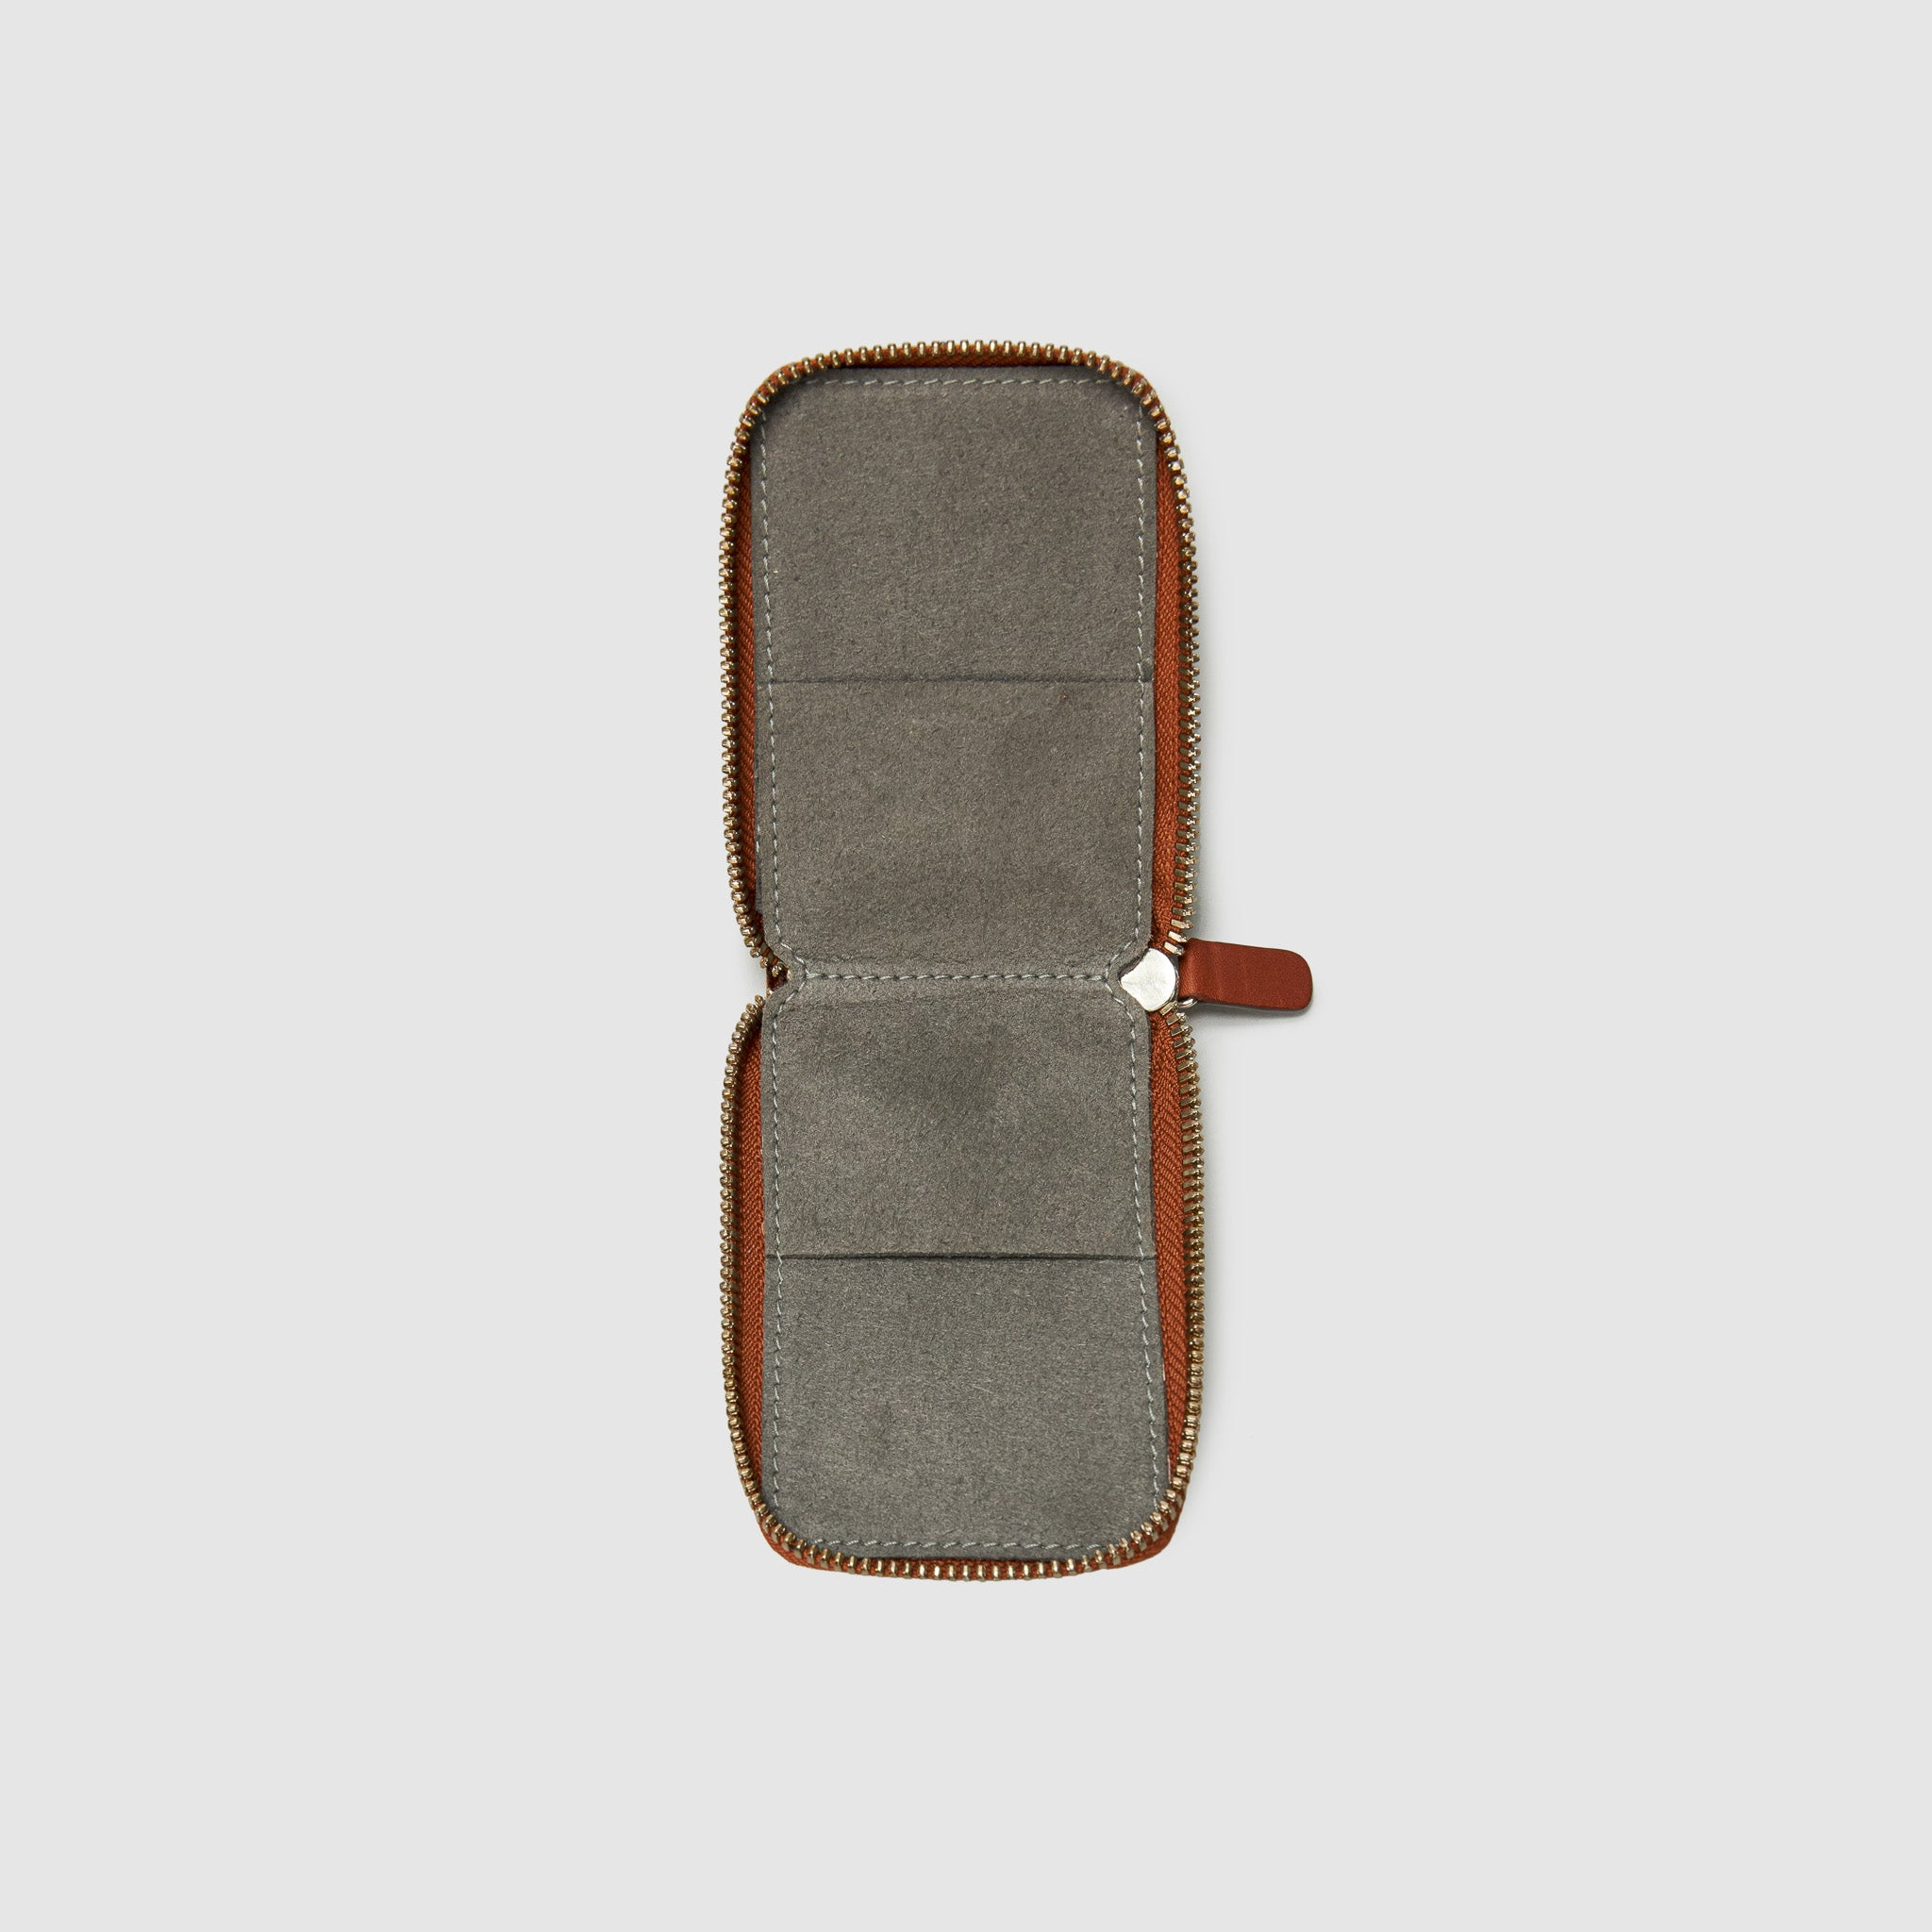 Anson Calder zip-around Wallet with zipper and pockets RFID french calfskin leather *hover _cognac